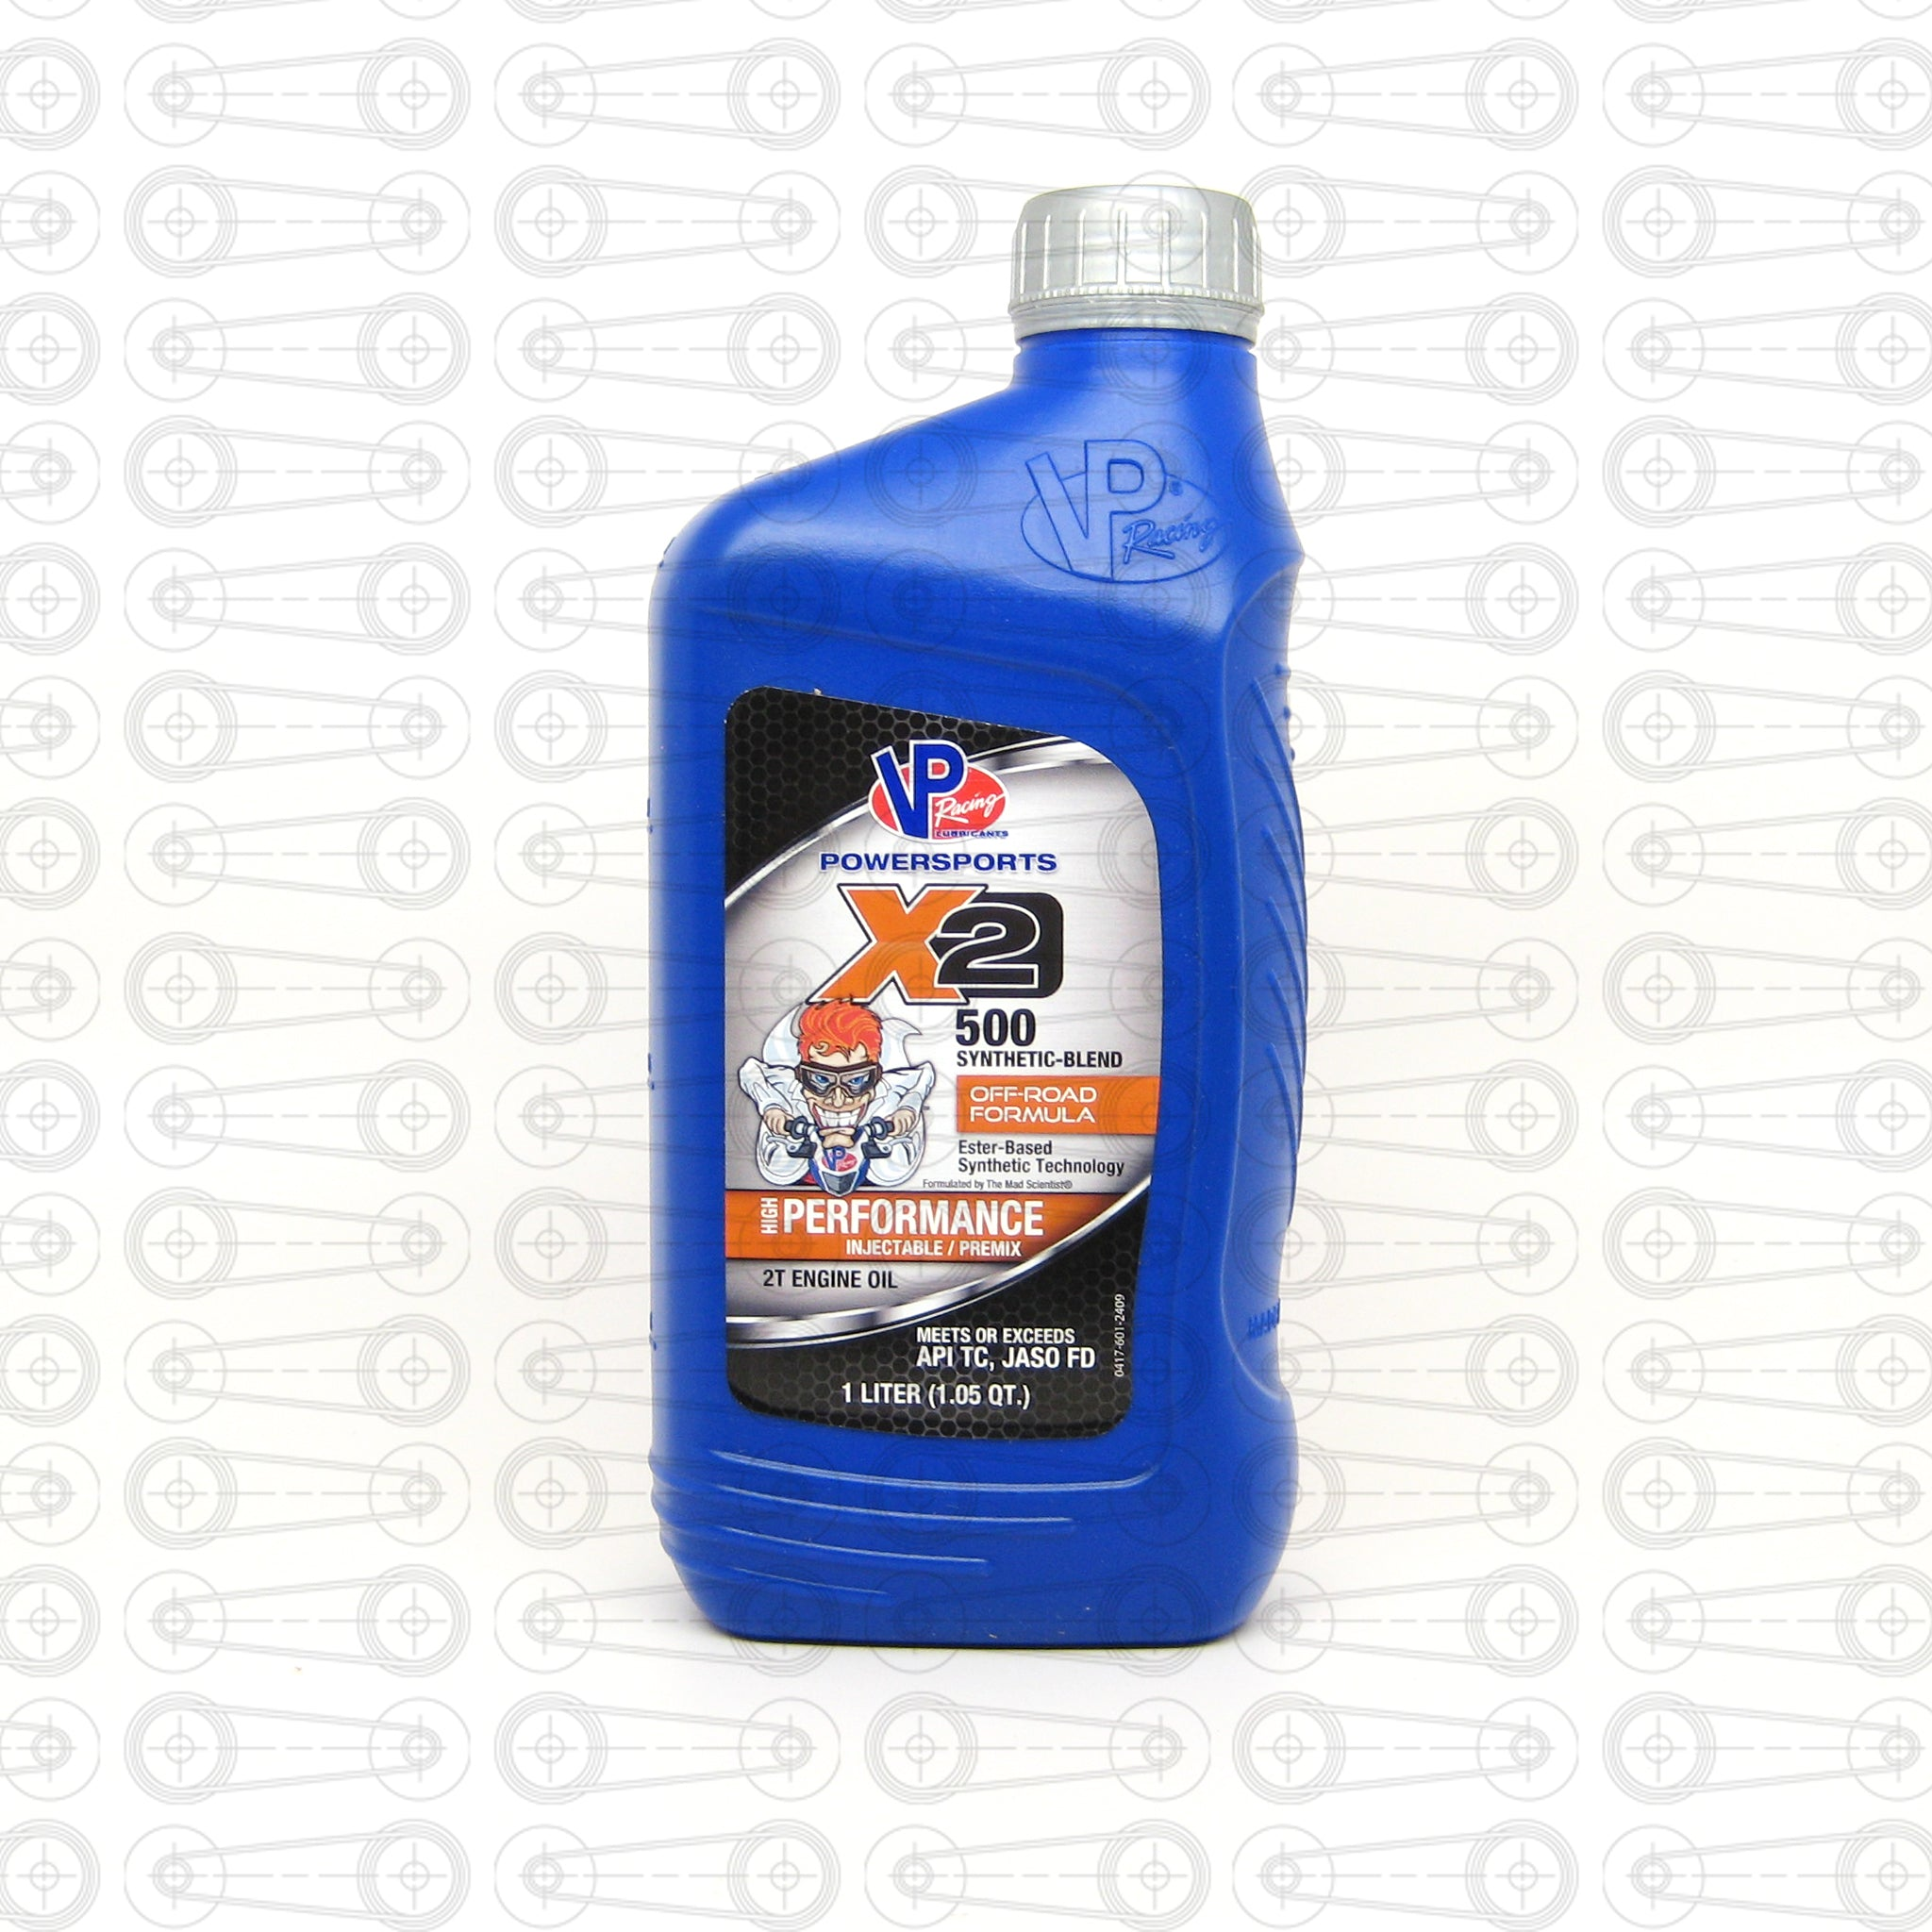 VP - X2 500 Two Stroke Engine Oil